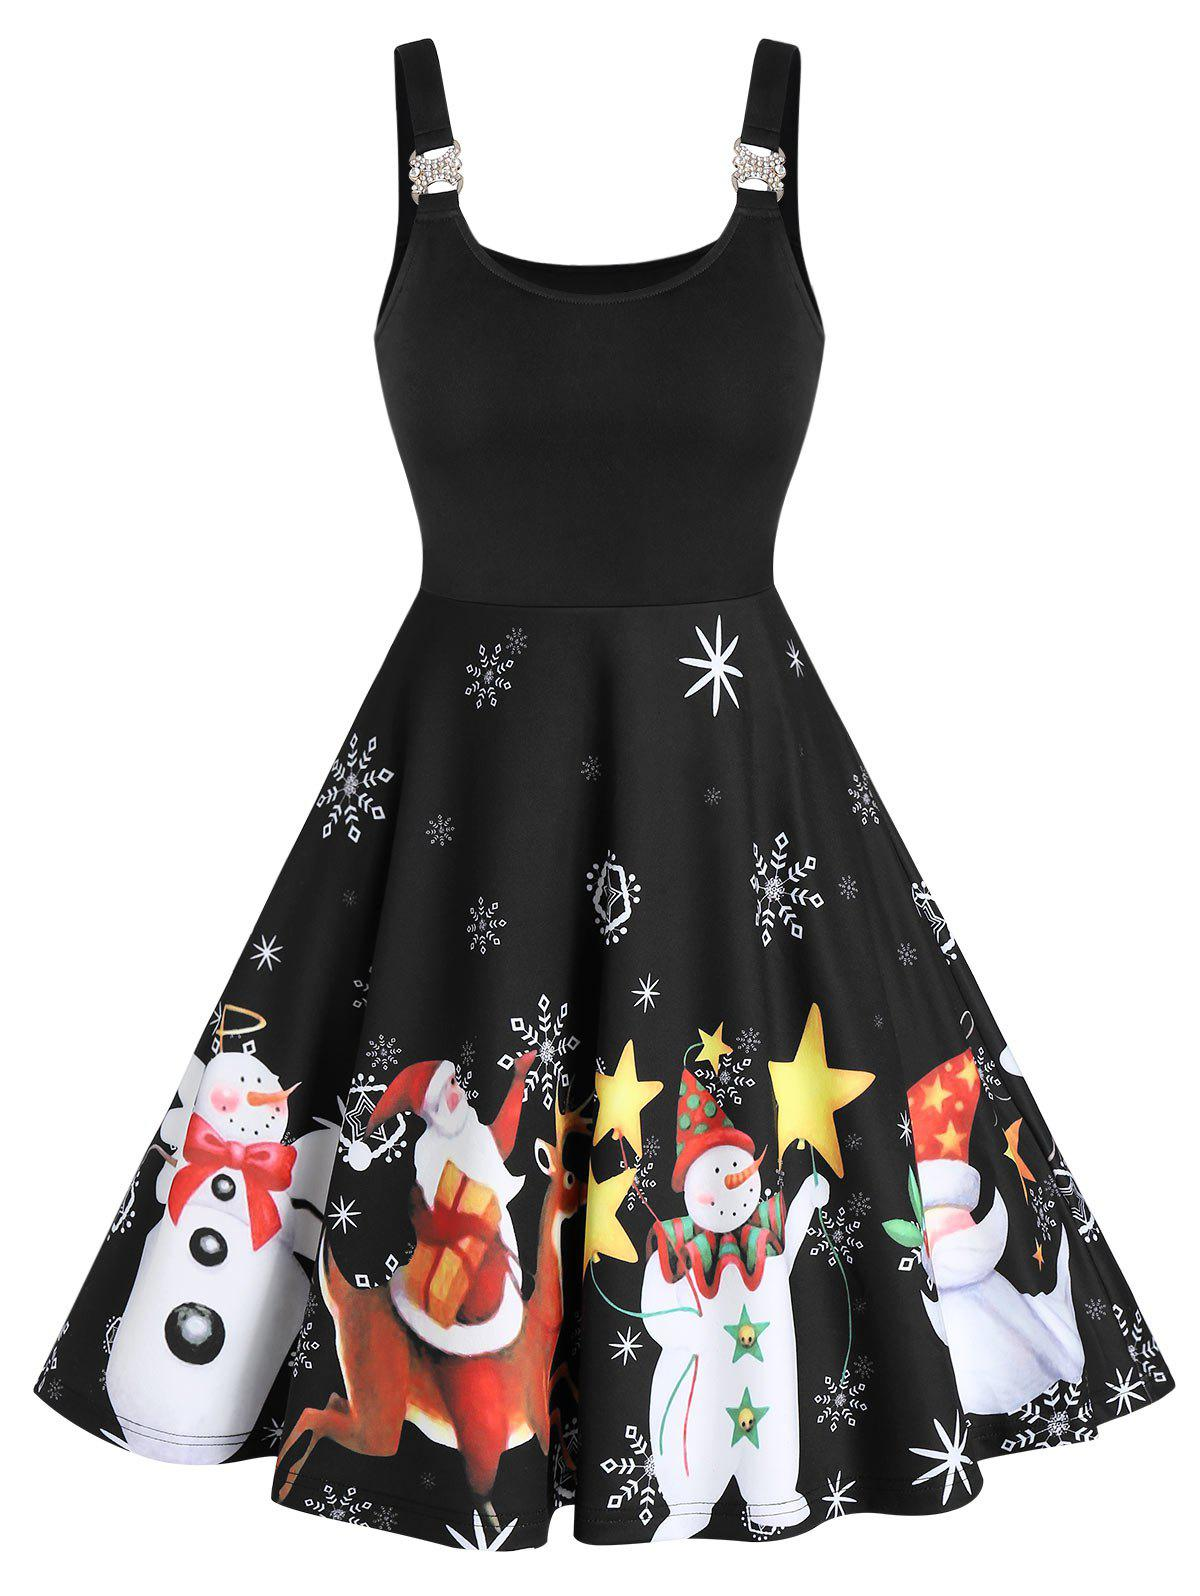 Christmas Santa Claus Snowman Print Sleeveless Flare Dress - multicolor A 3XL